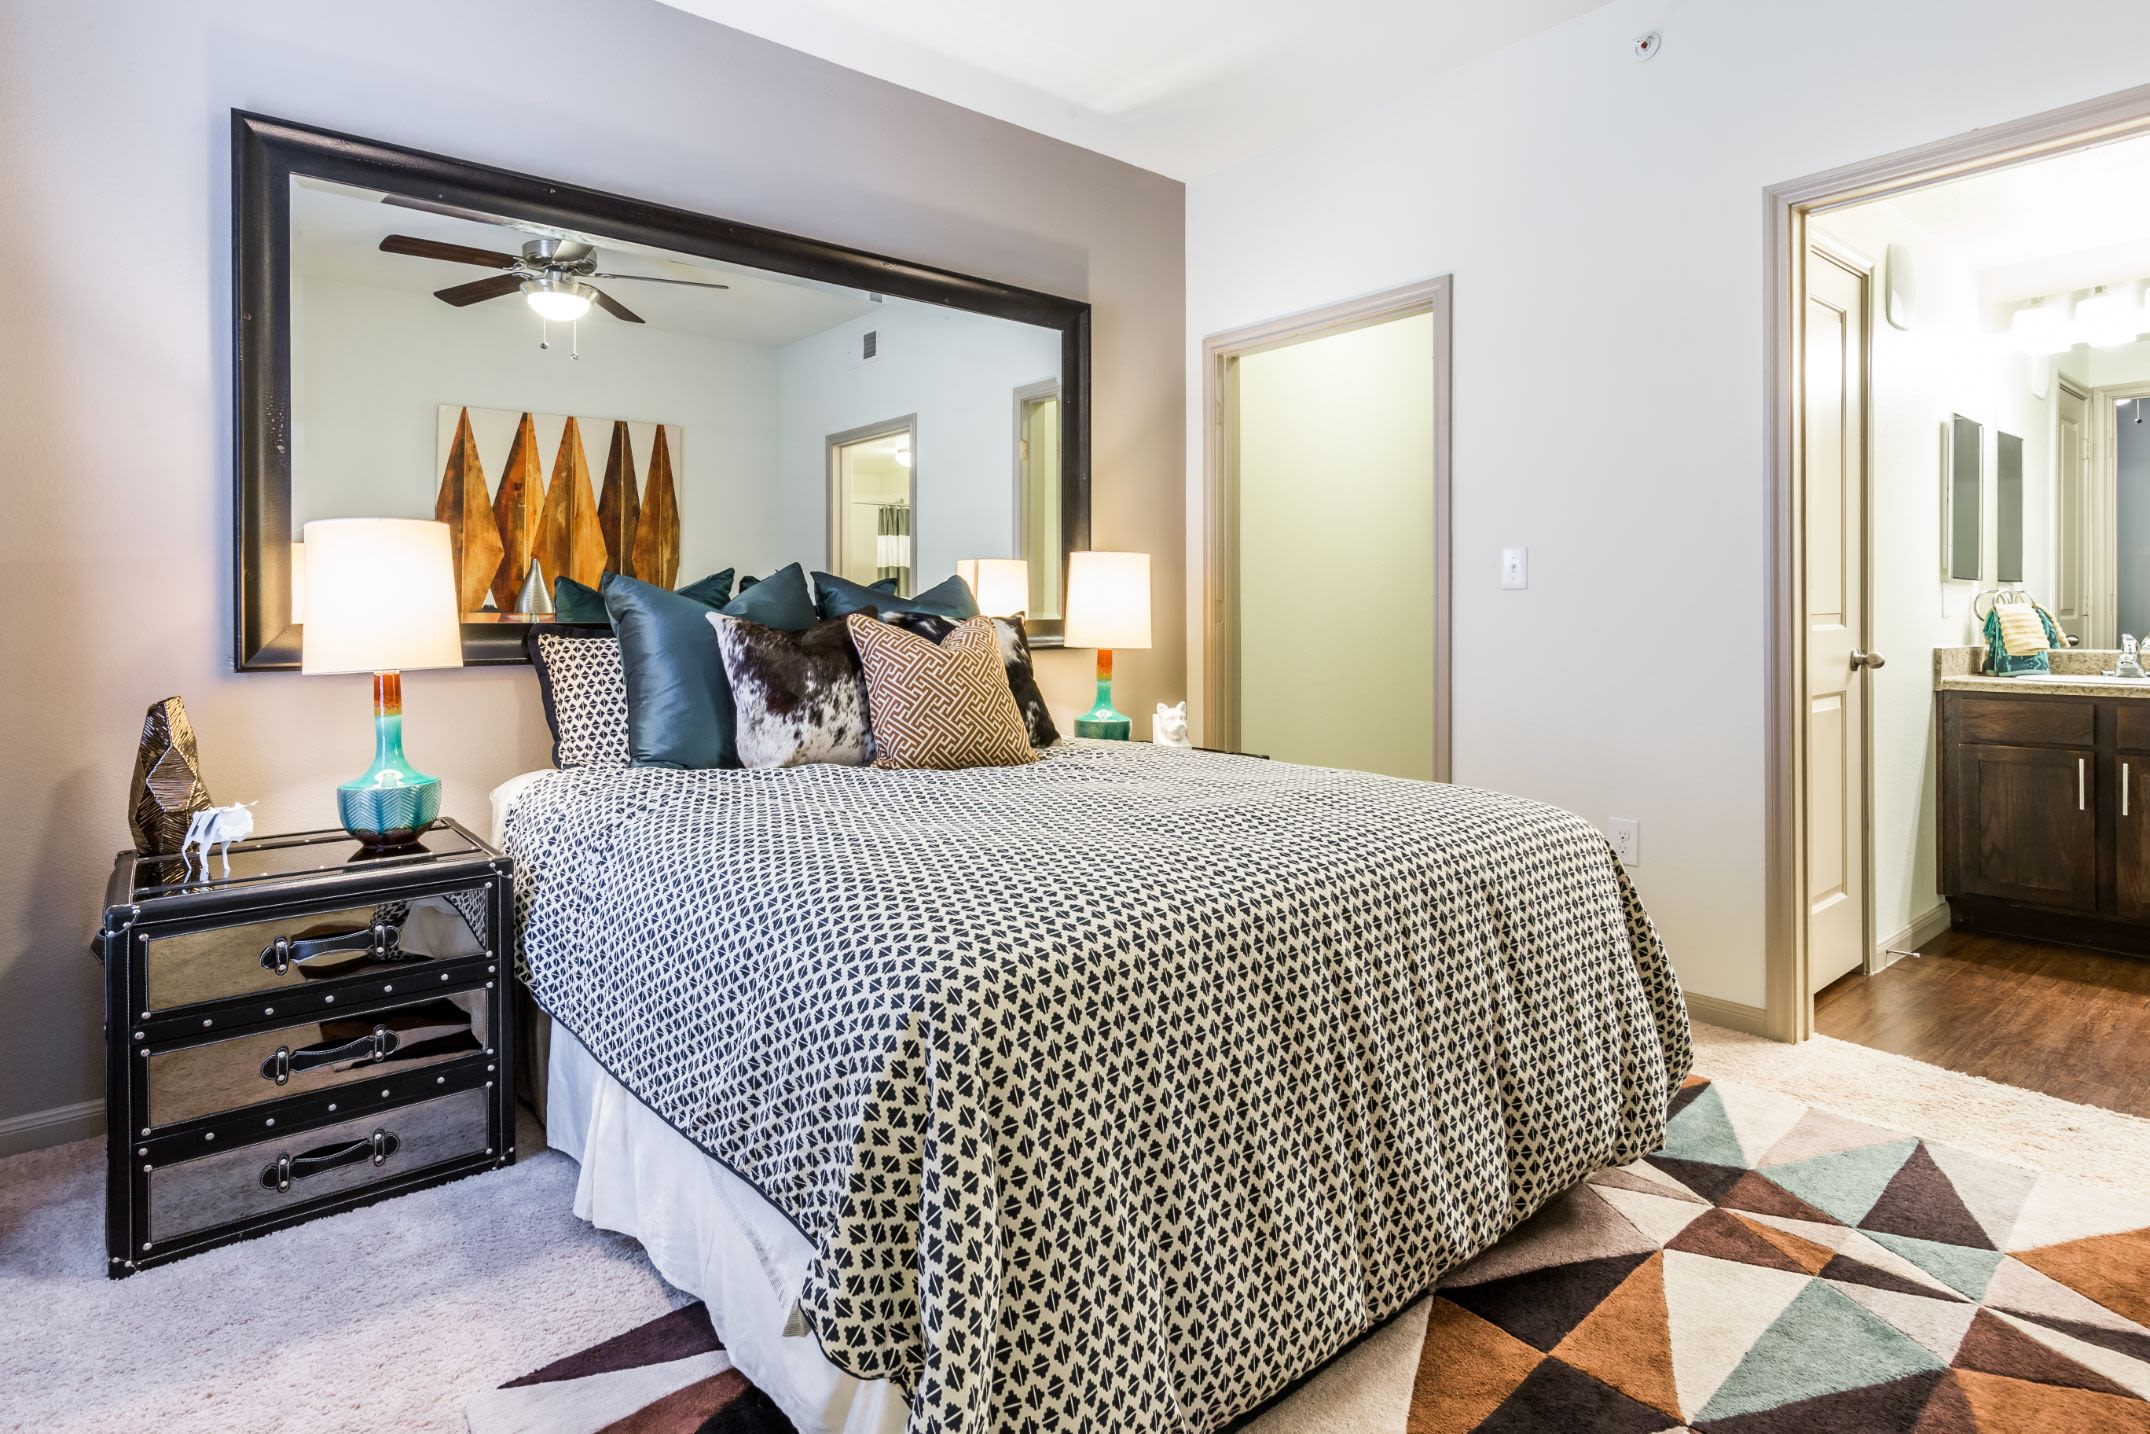 Bright bedroom with a large mirror behind the bed at Marquis on Lakeline in Cedar Park, Texas